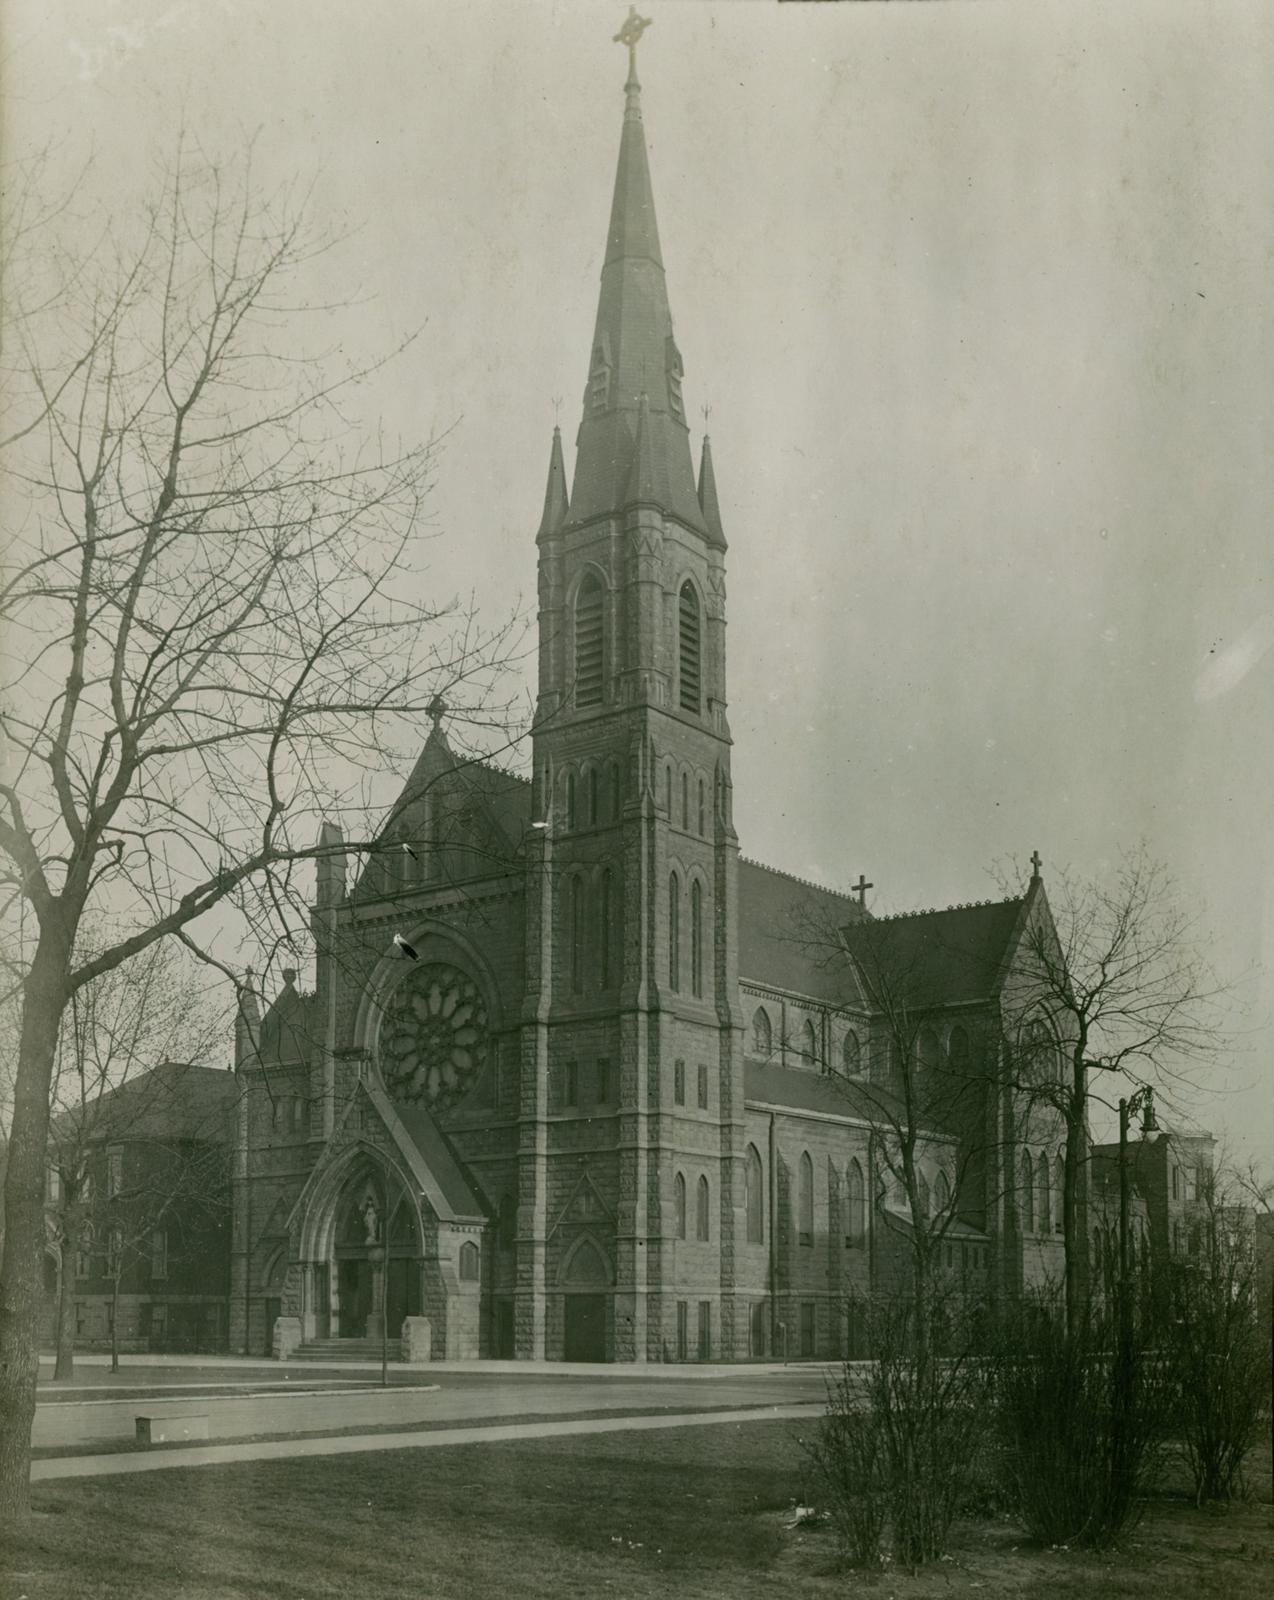 Visitation Church, Chicago, between 1913 and 1914